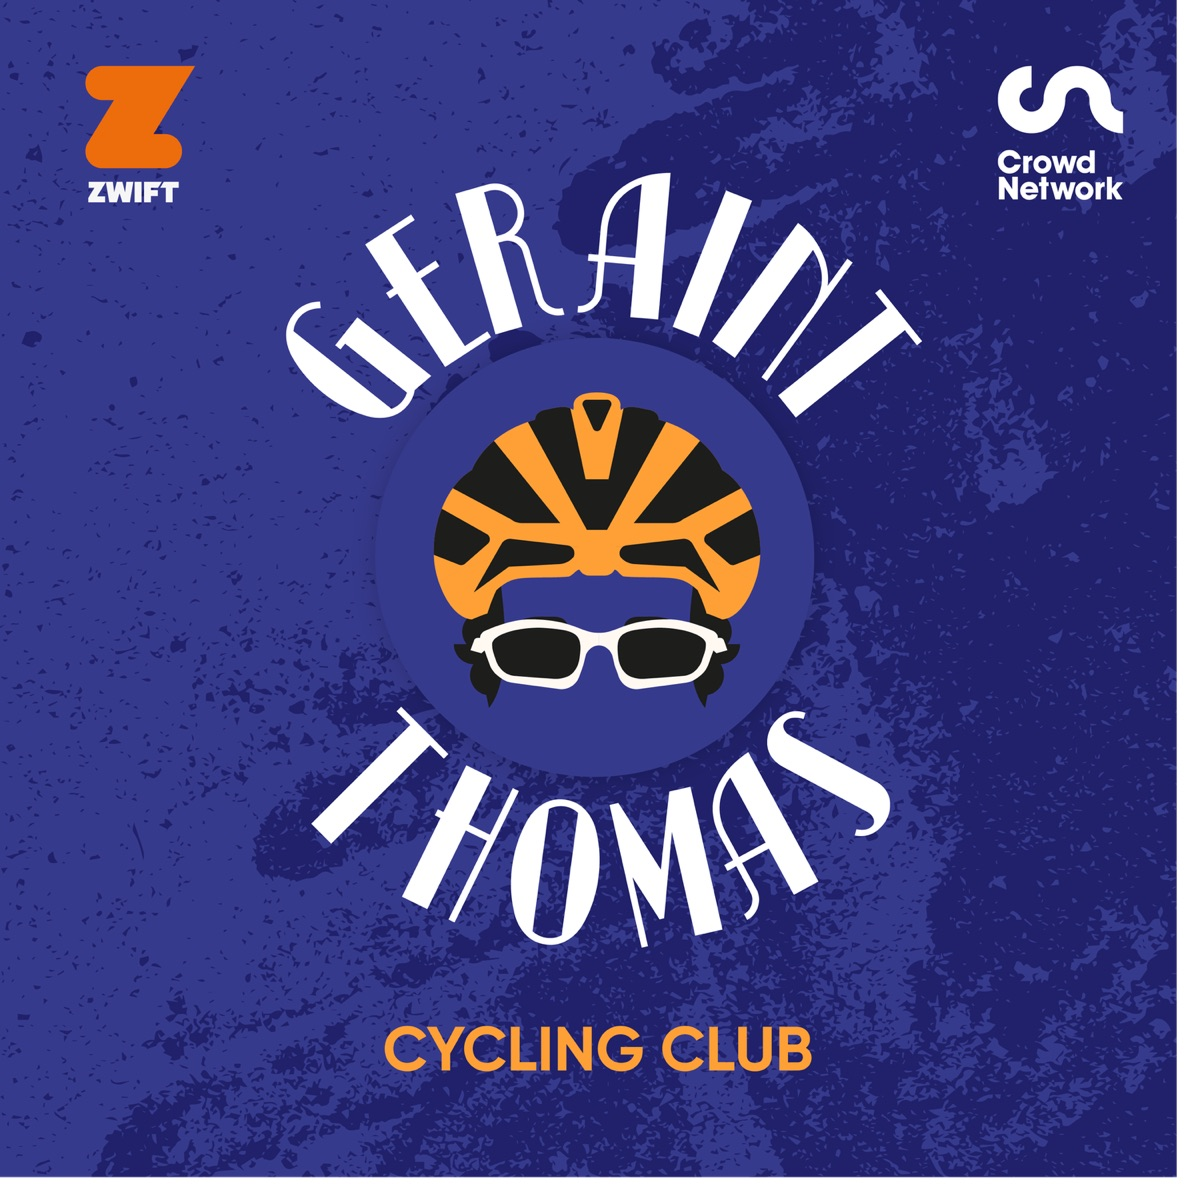 Geraint Thomas Cycling Club